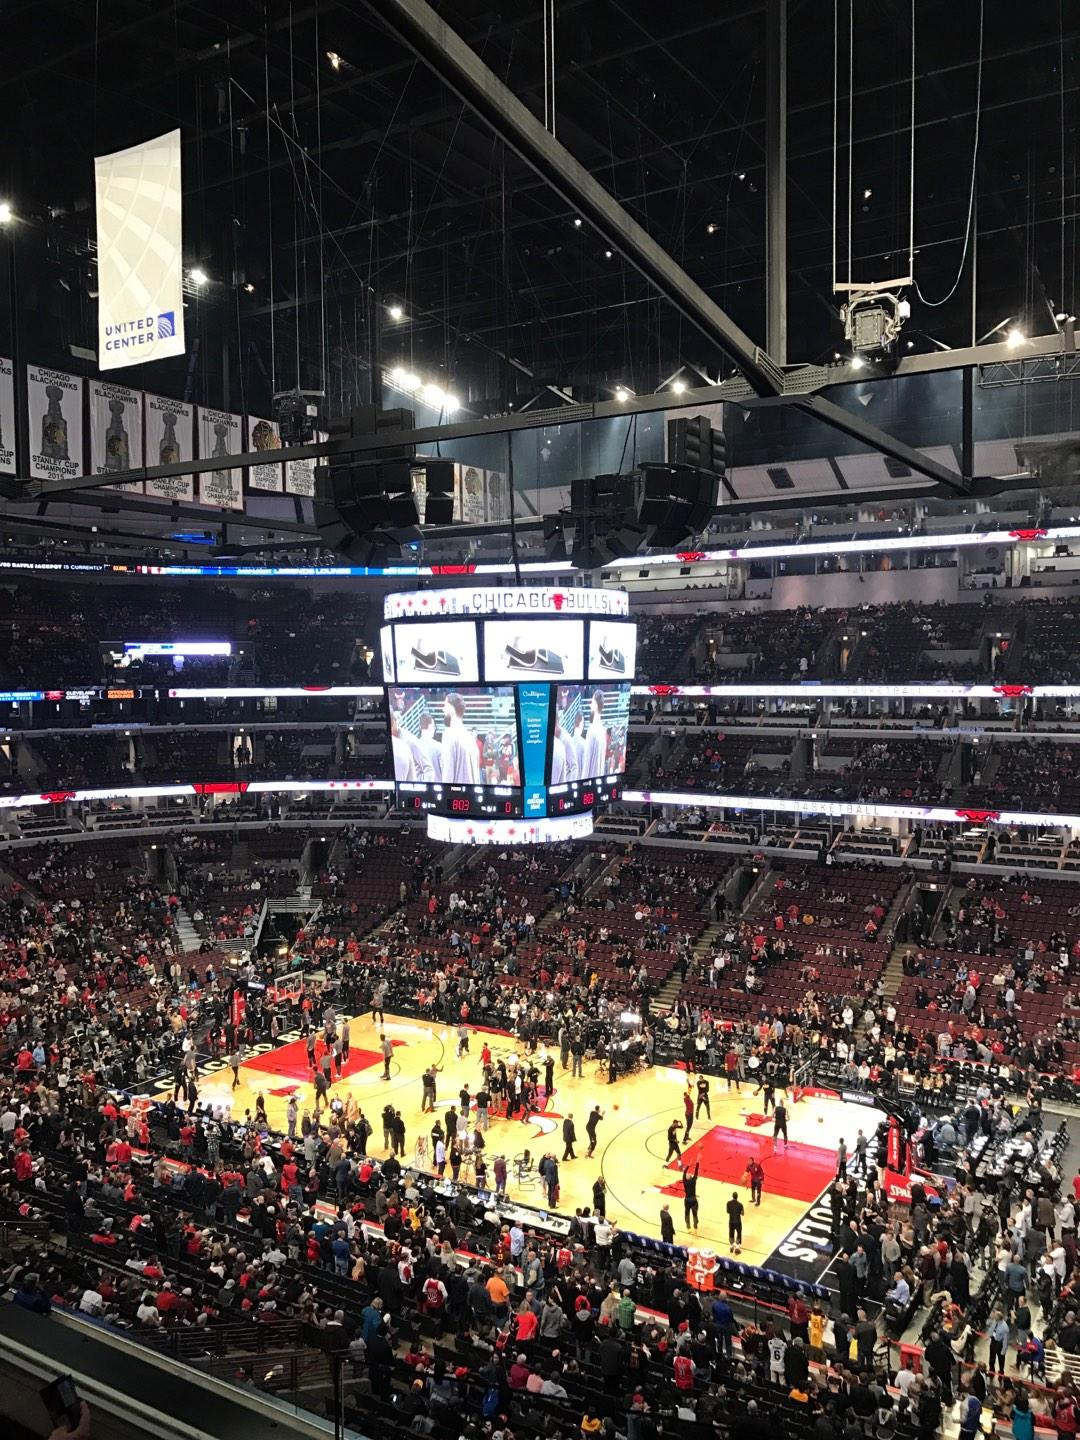 United Center Section 332 Row 3 Seat 4